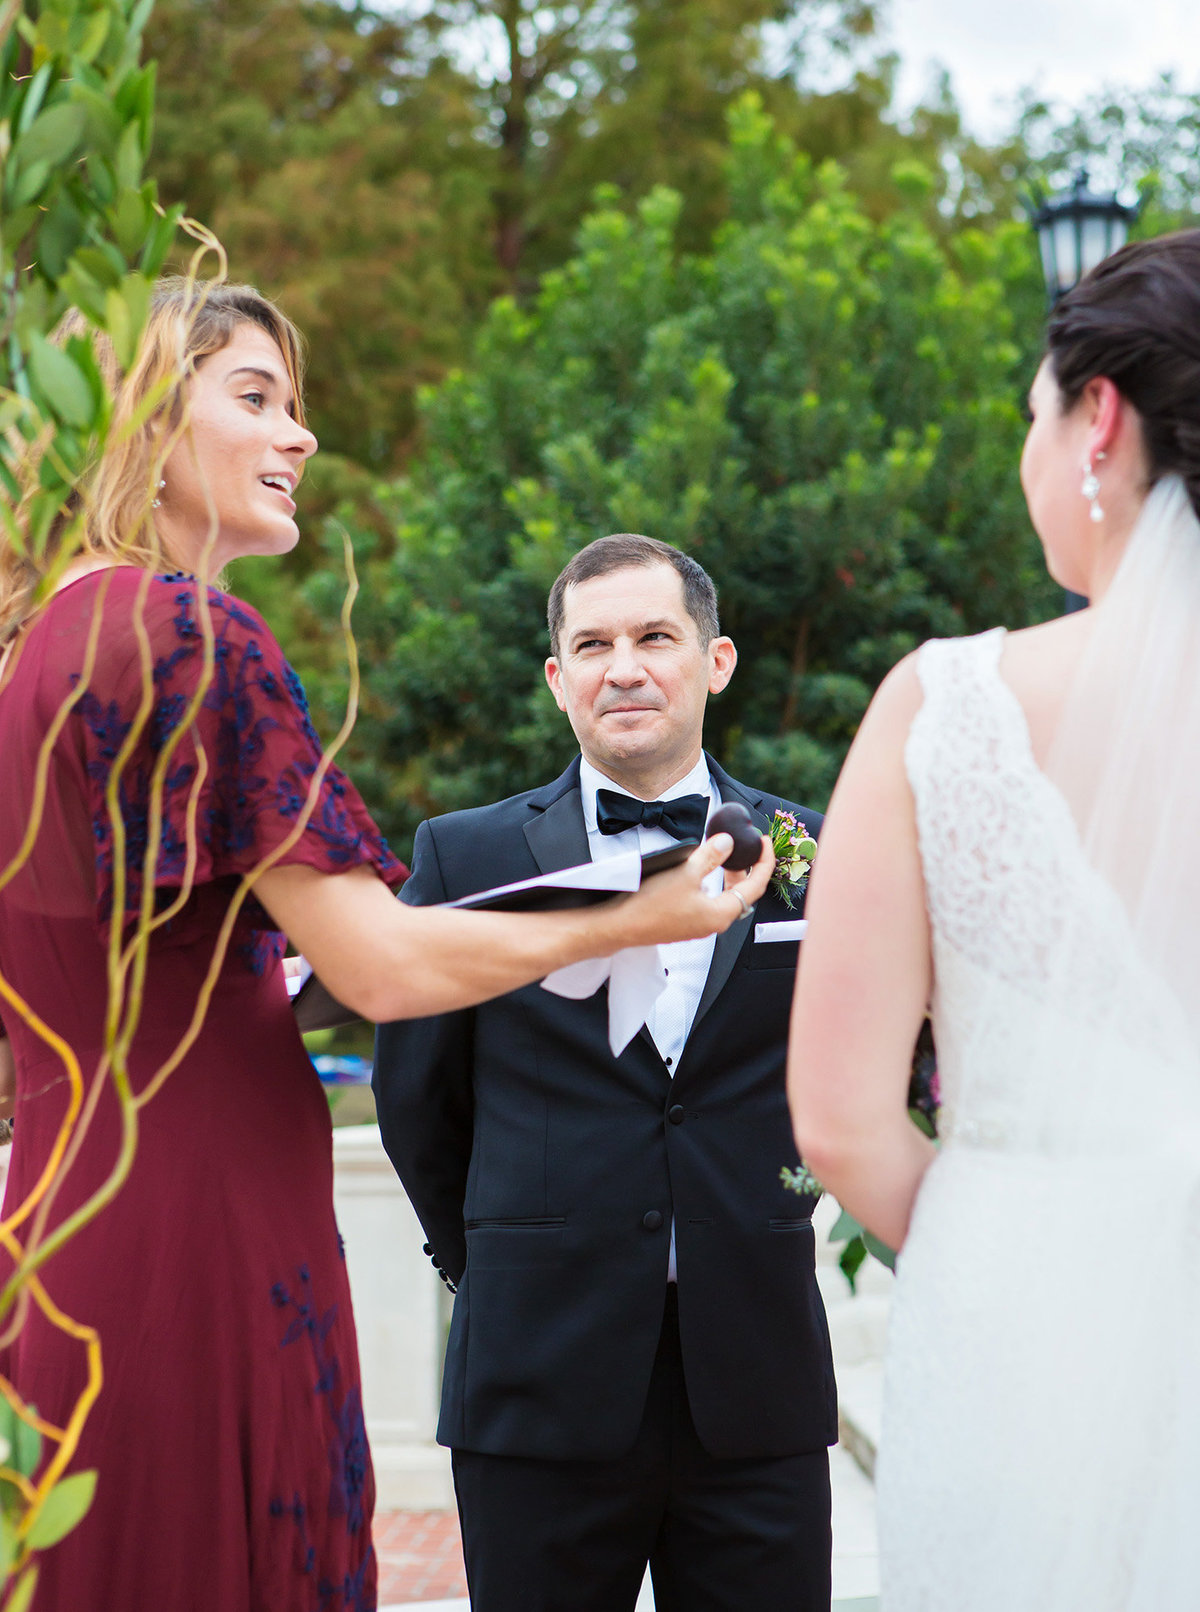 nola officiant holding heart shaped rock out to wedding couple during vows